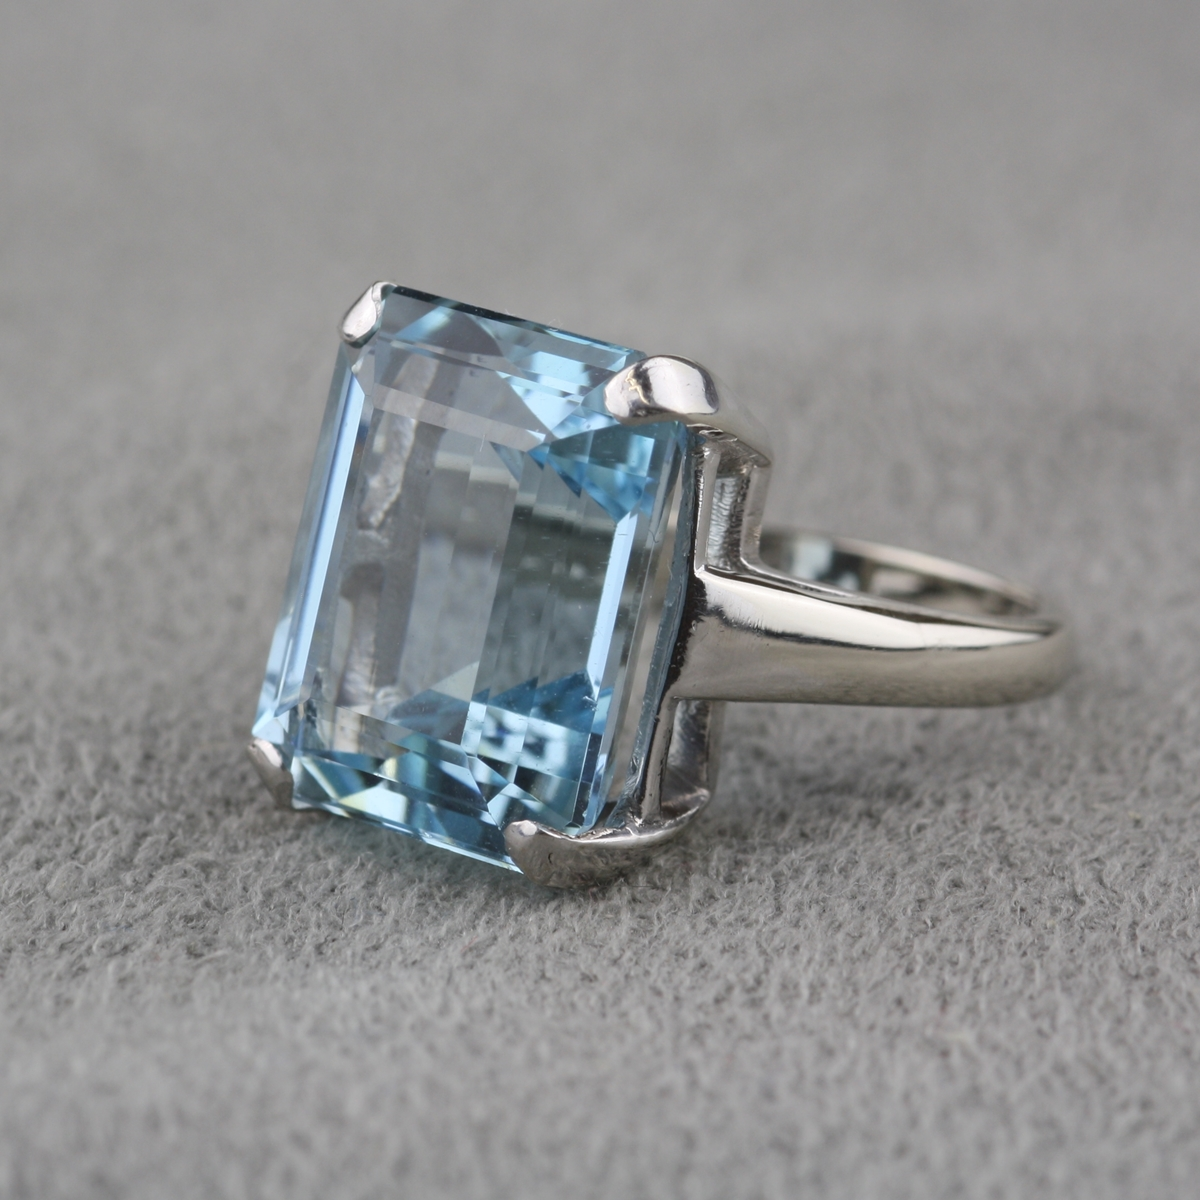 Very Pre-Owned Vintage Aquamarine Ring in 14 Karat White Gold VF61